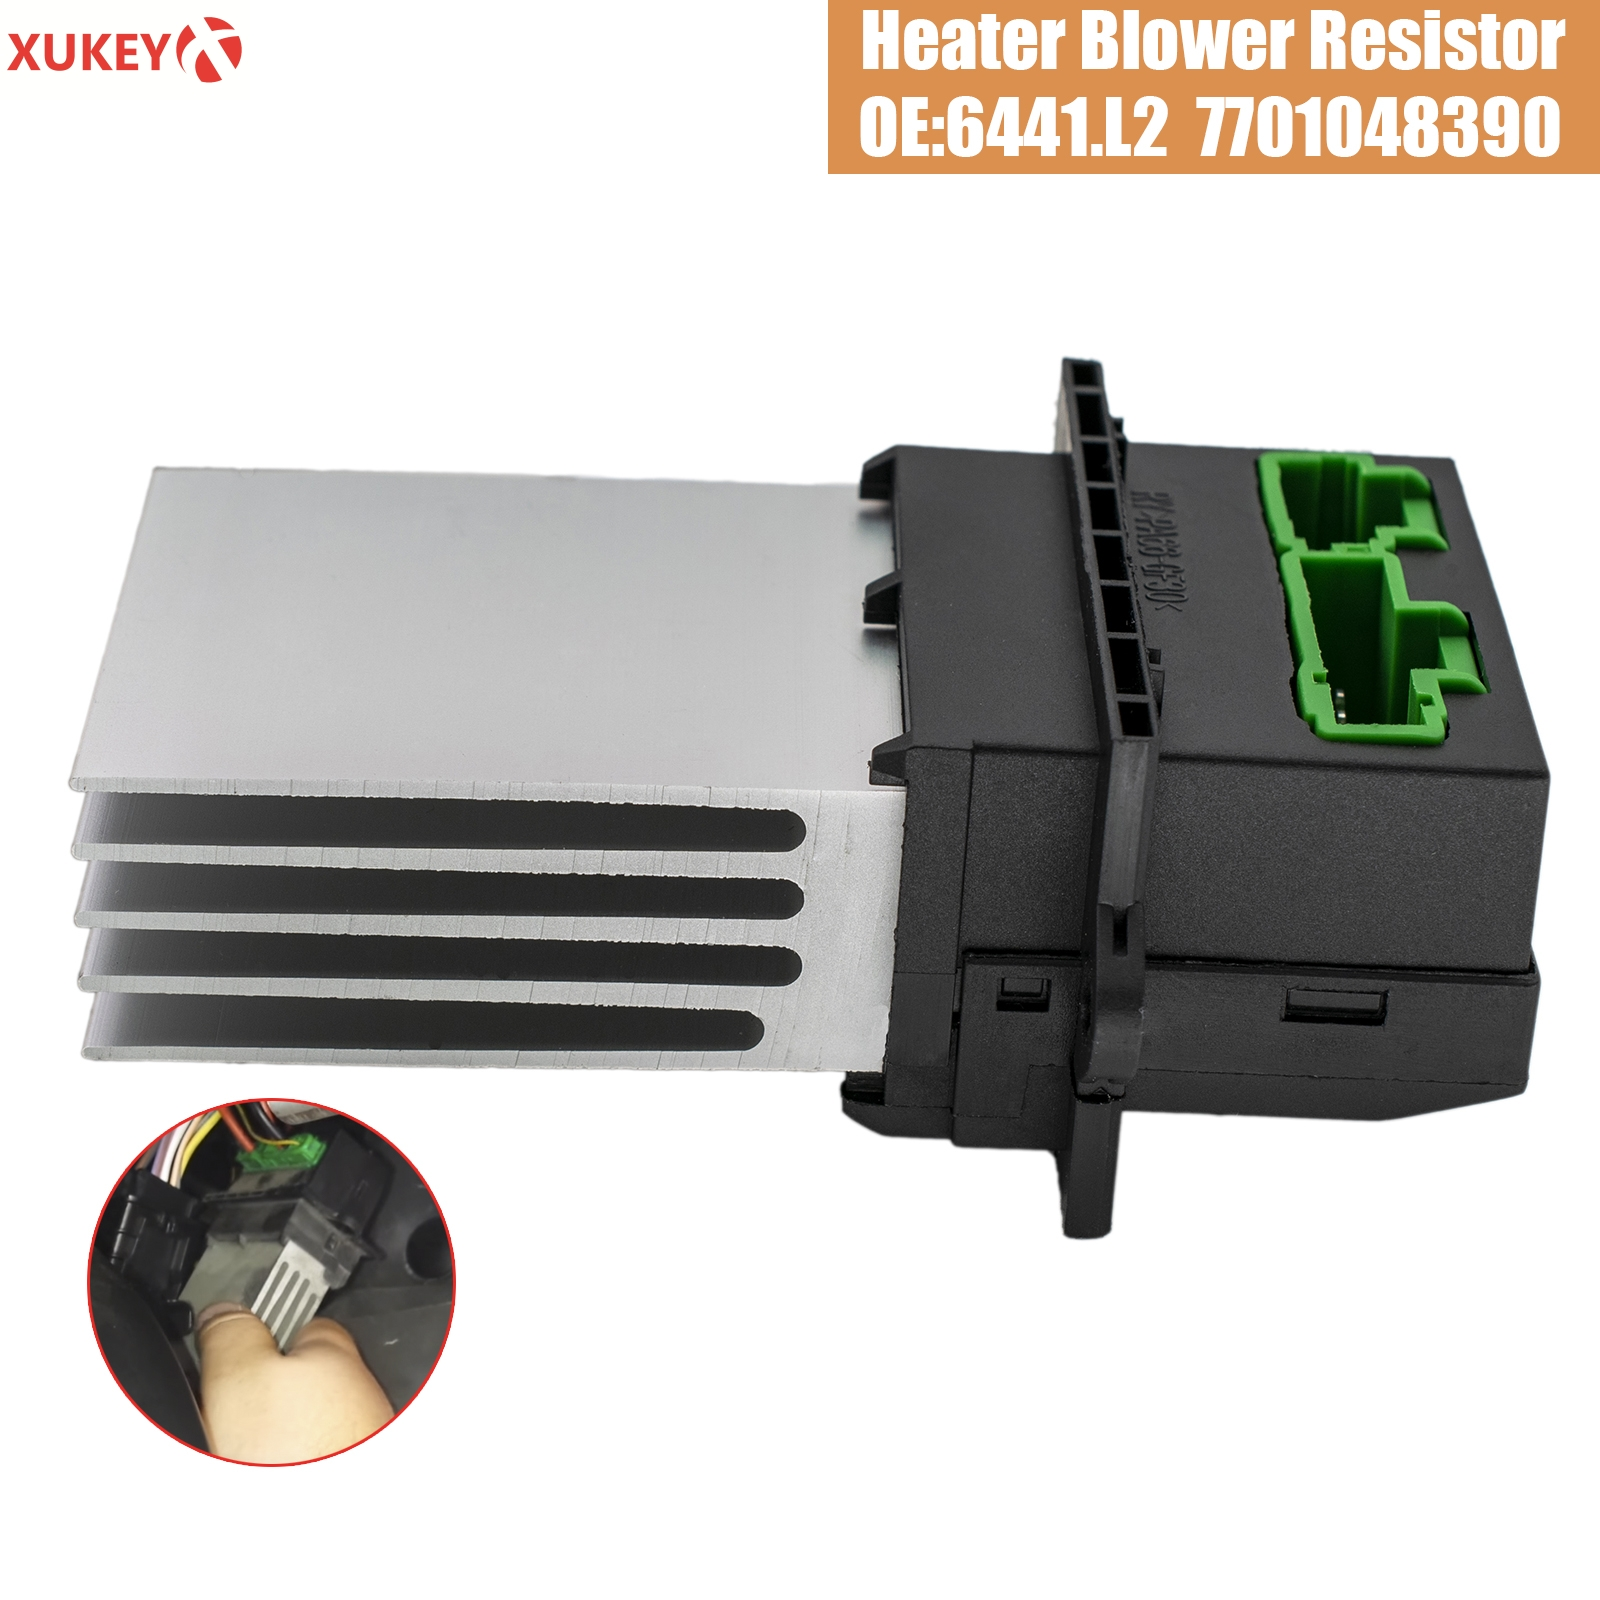 Air Conditioning Blower Resistor For Citroen Renault Megane Scenic Peugeot Nissan Tiida 6441.L2 7701207718 7701048390 Auto Parts